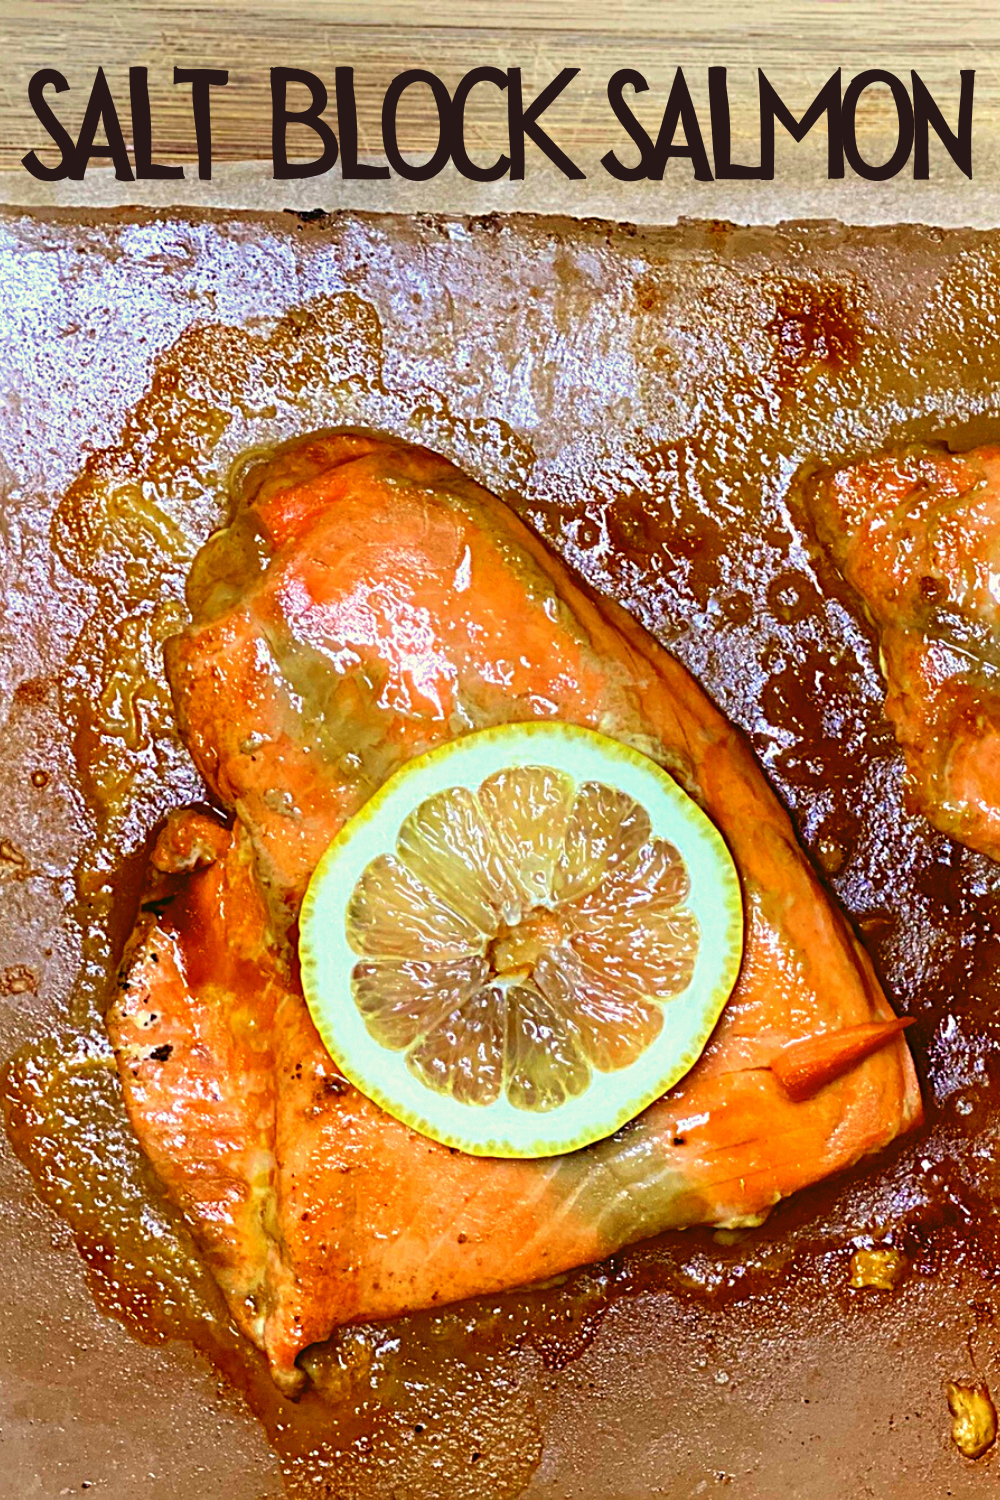 Using a Himalayan Salt Block to Cook Salmon (with recipe) 2